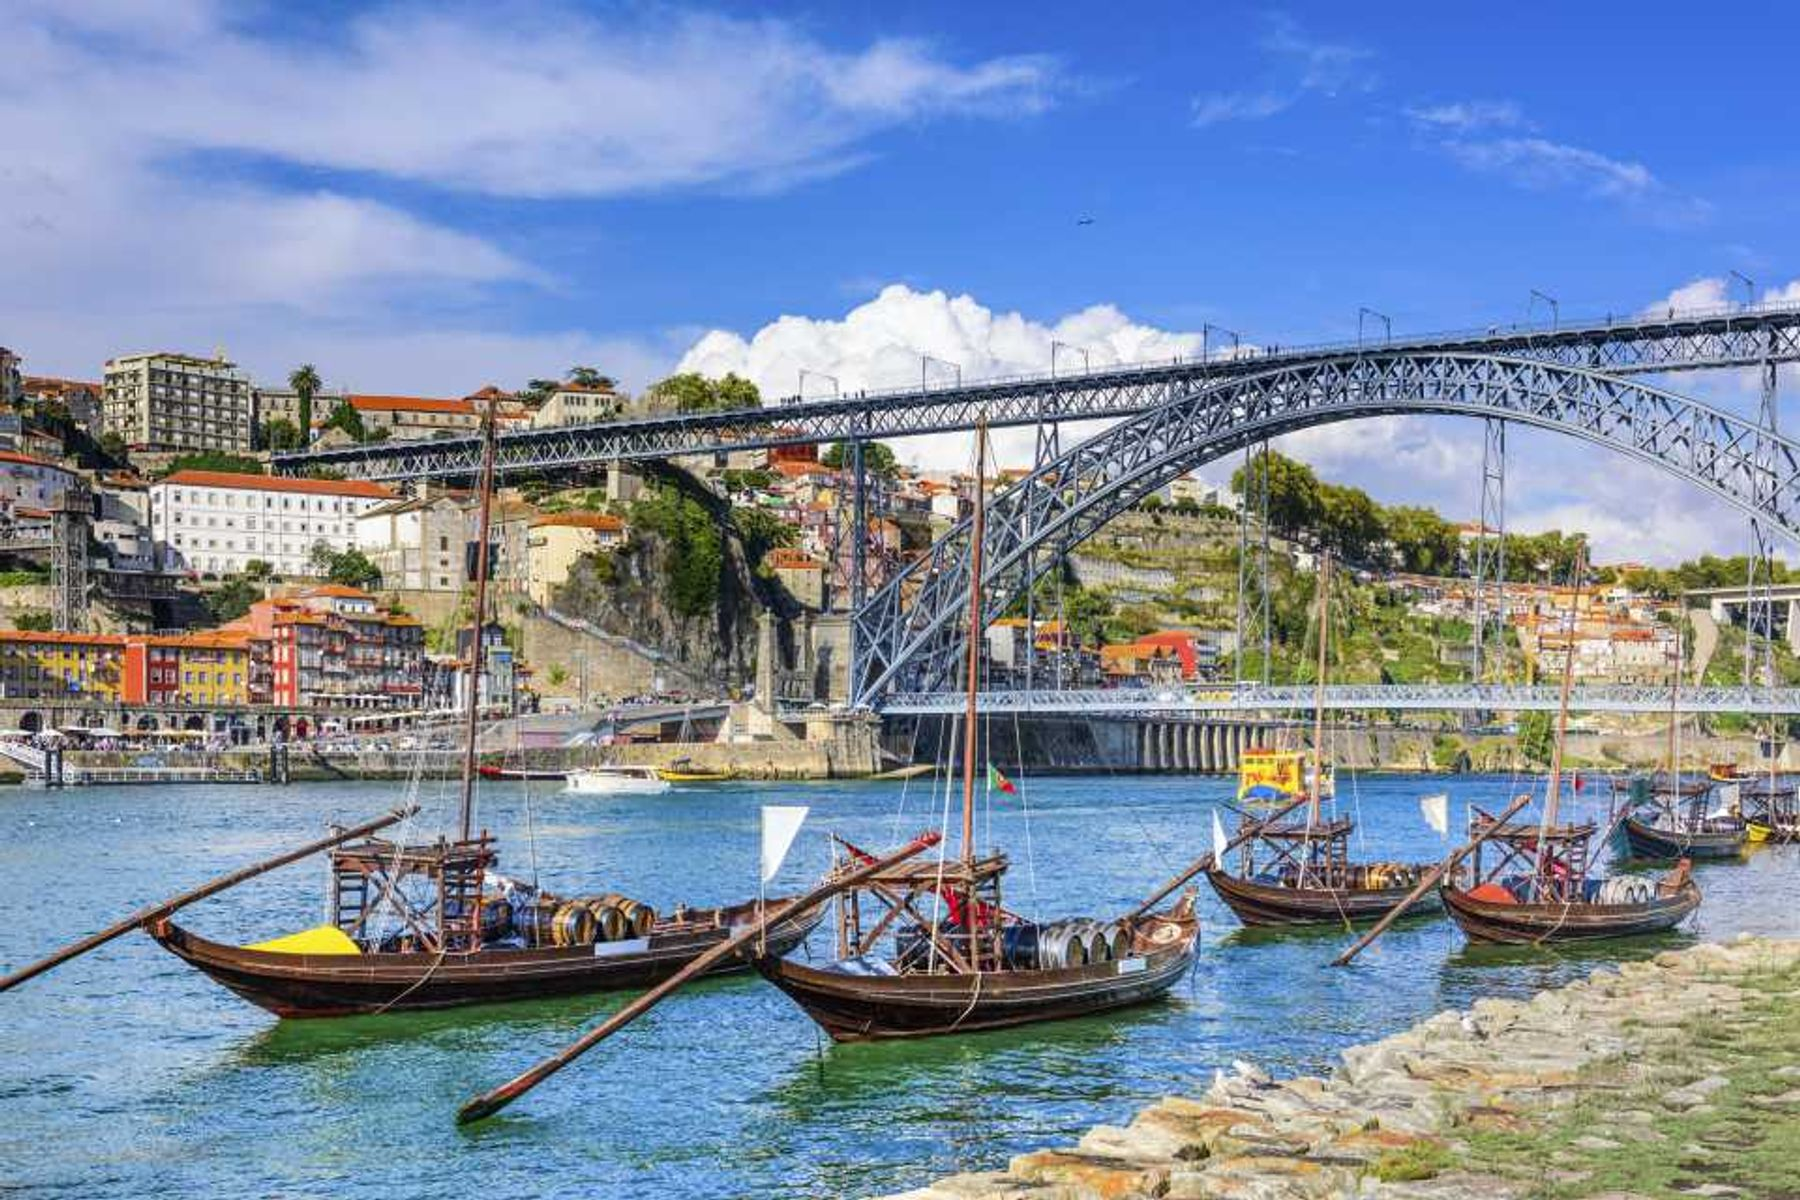 View of Porto from Vila Nova de Gaia with Dom Luis I bridge in the background and old-fashioned boats in the foreground